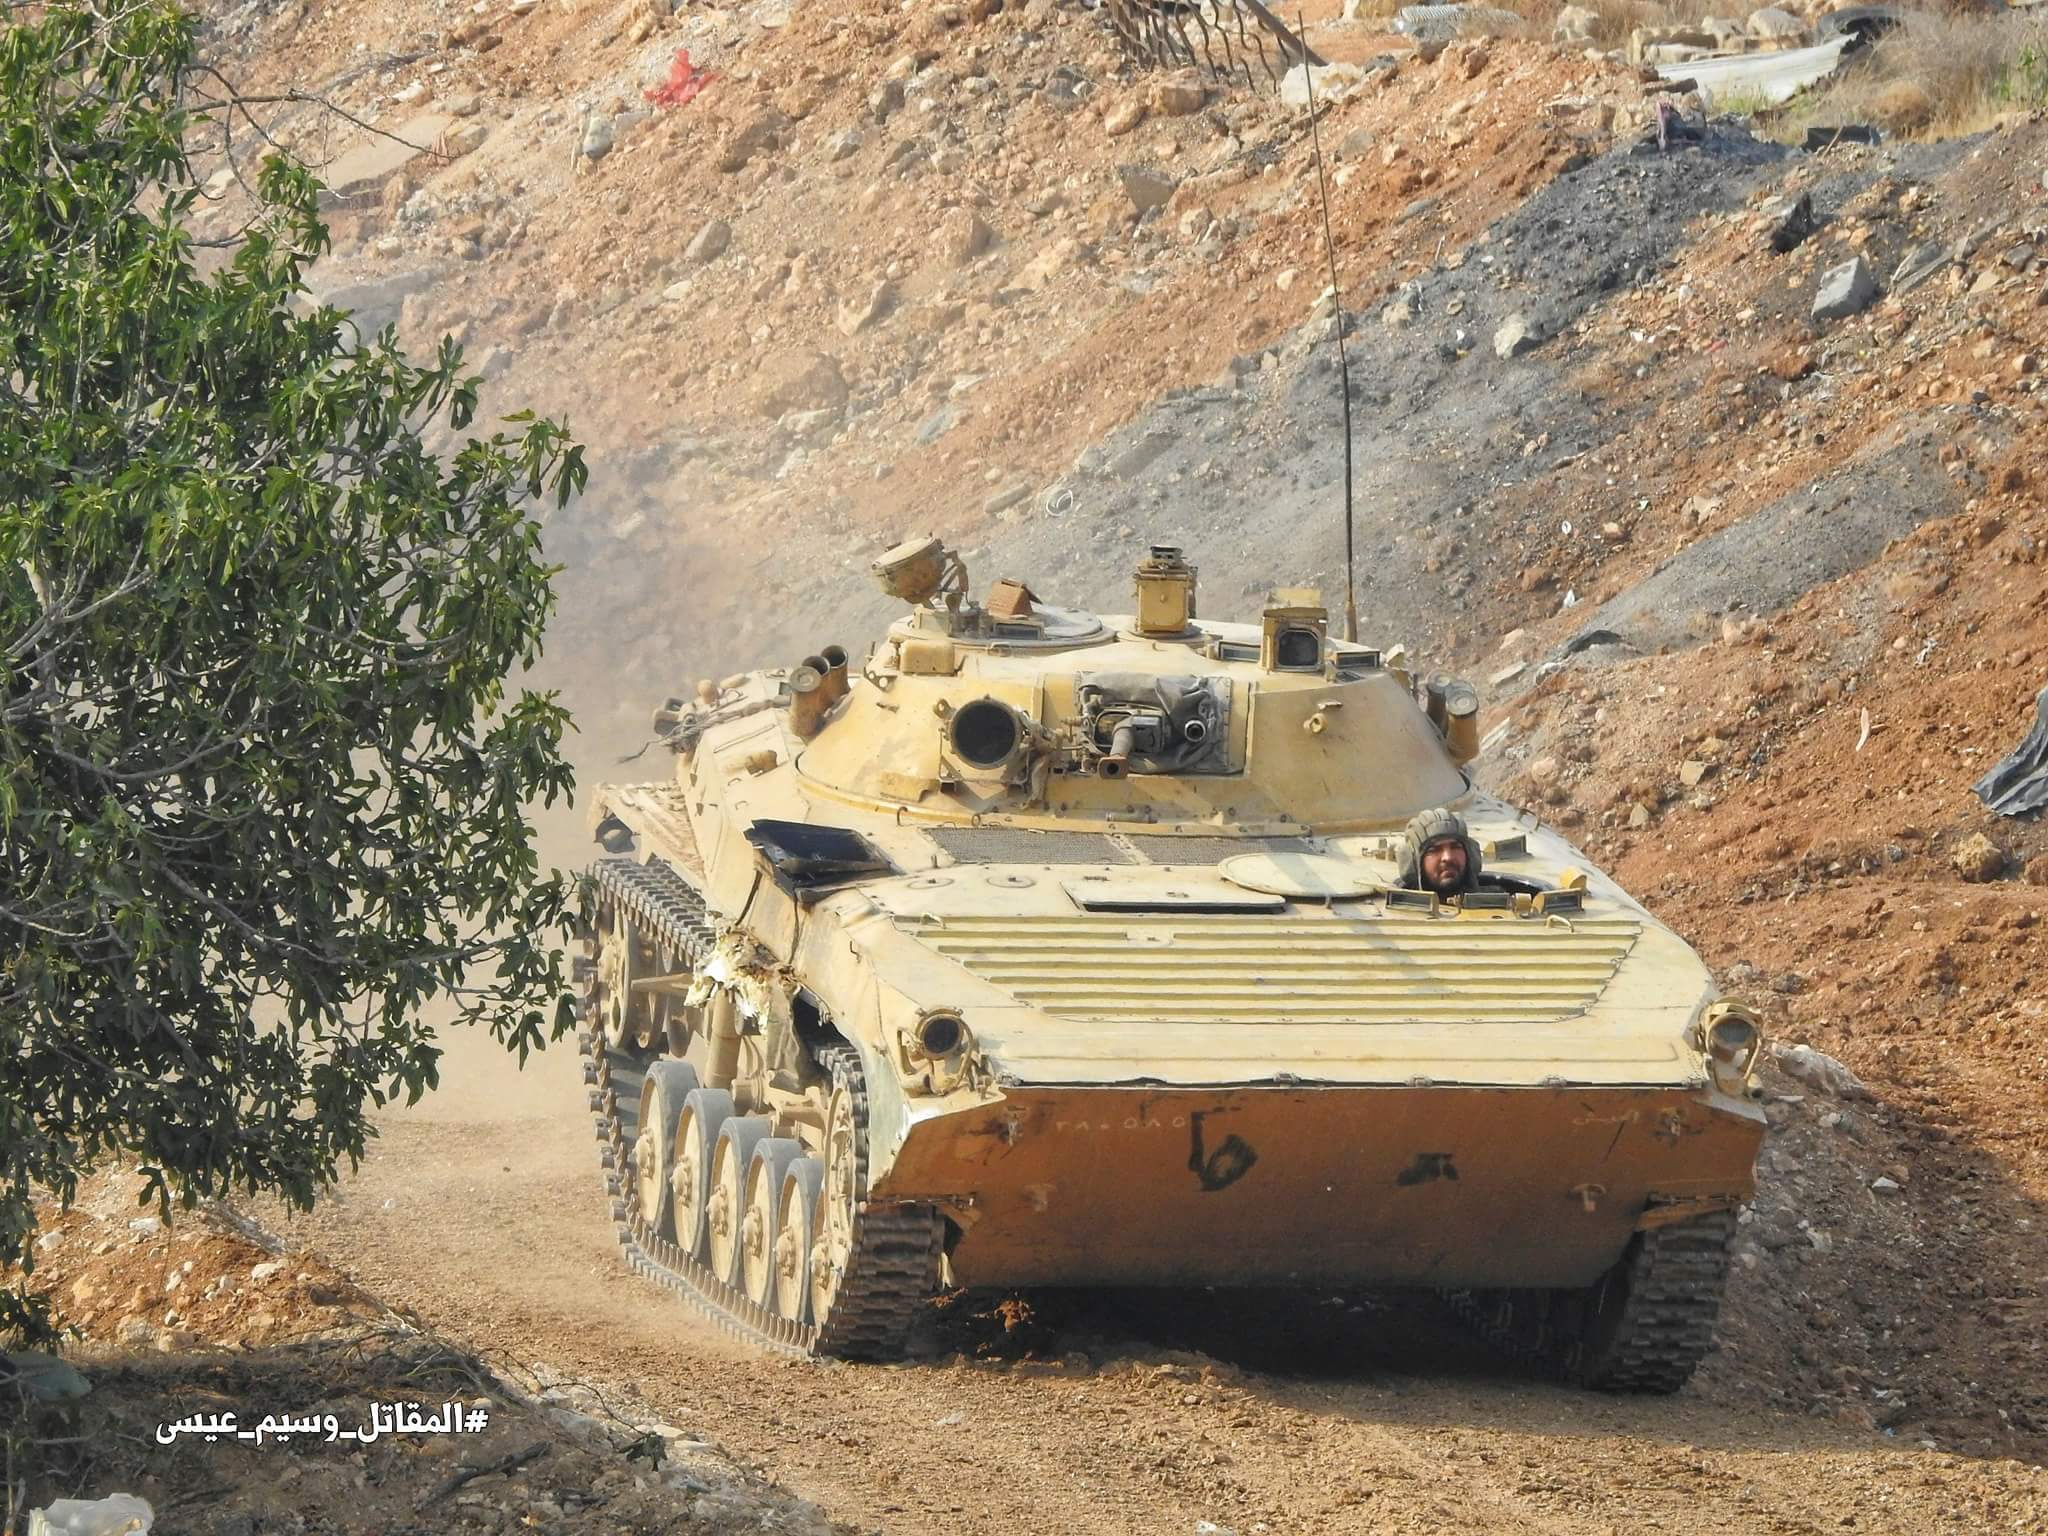 Syrian Army Increases Pressure On ISIS In Yarmouk, New Round Of Negotiations Reported